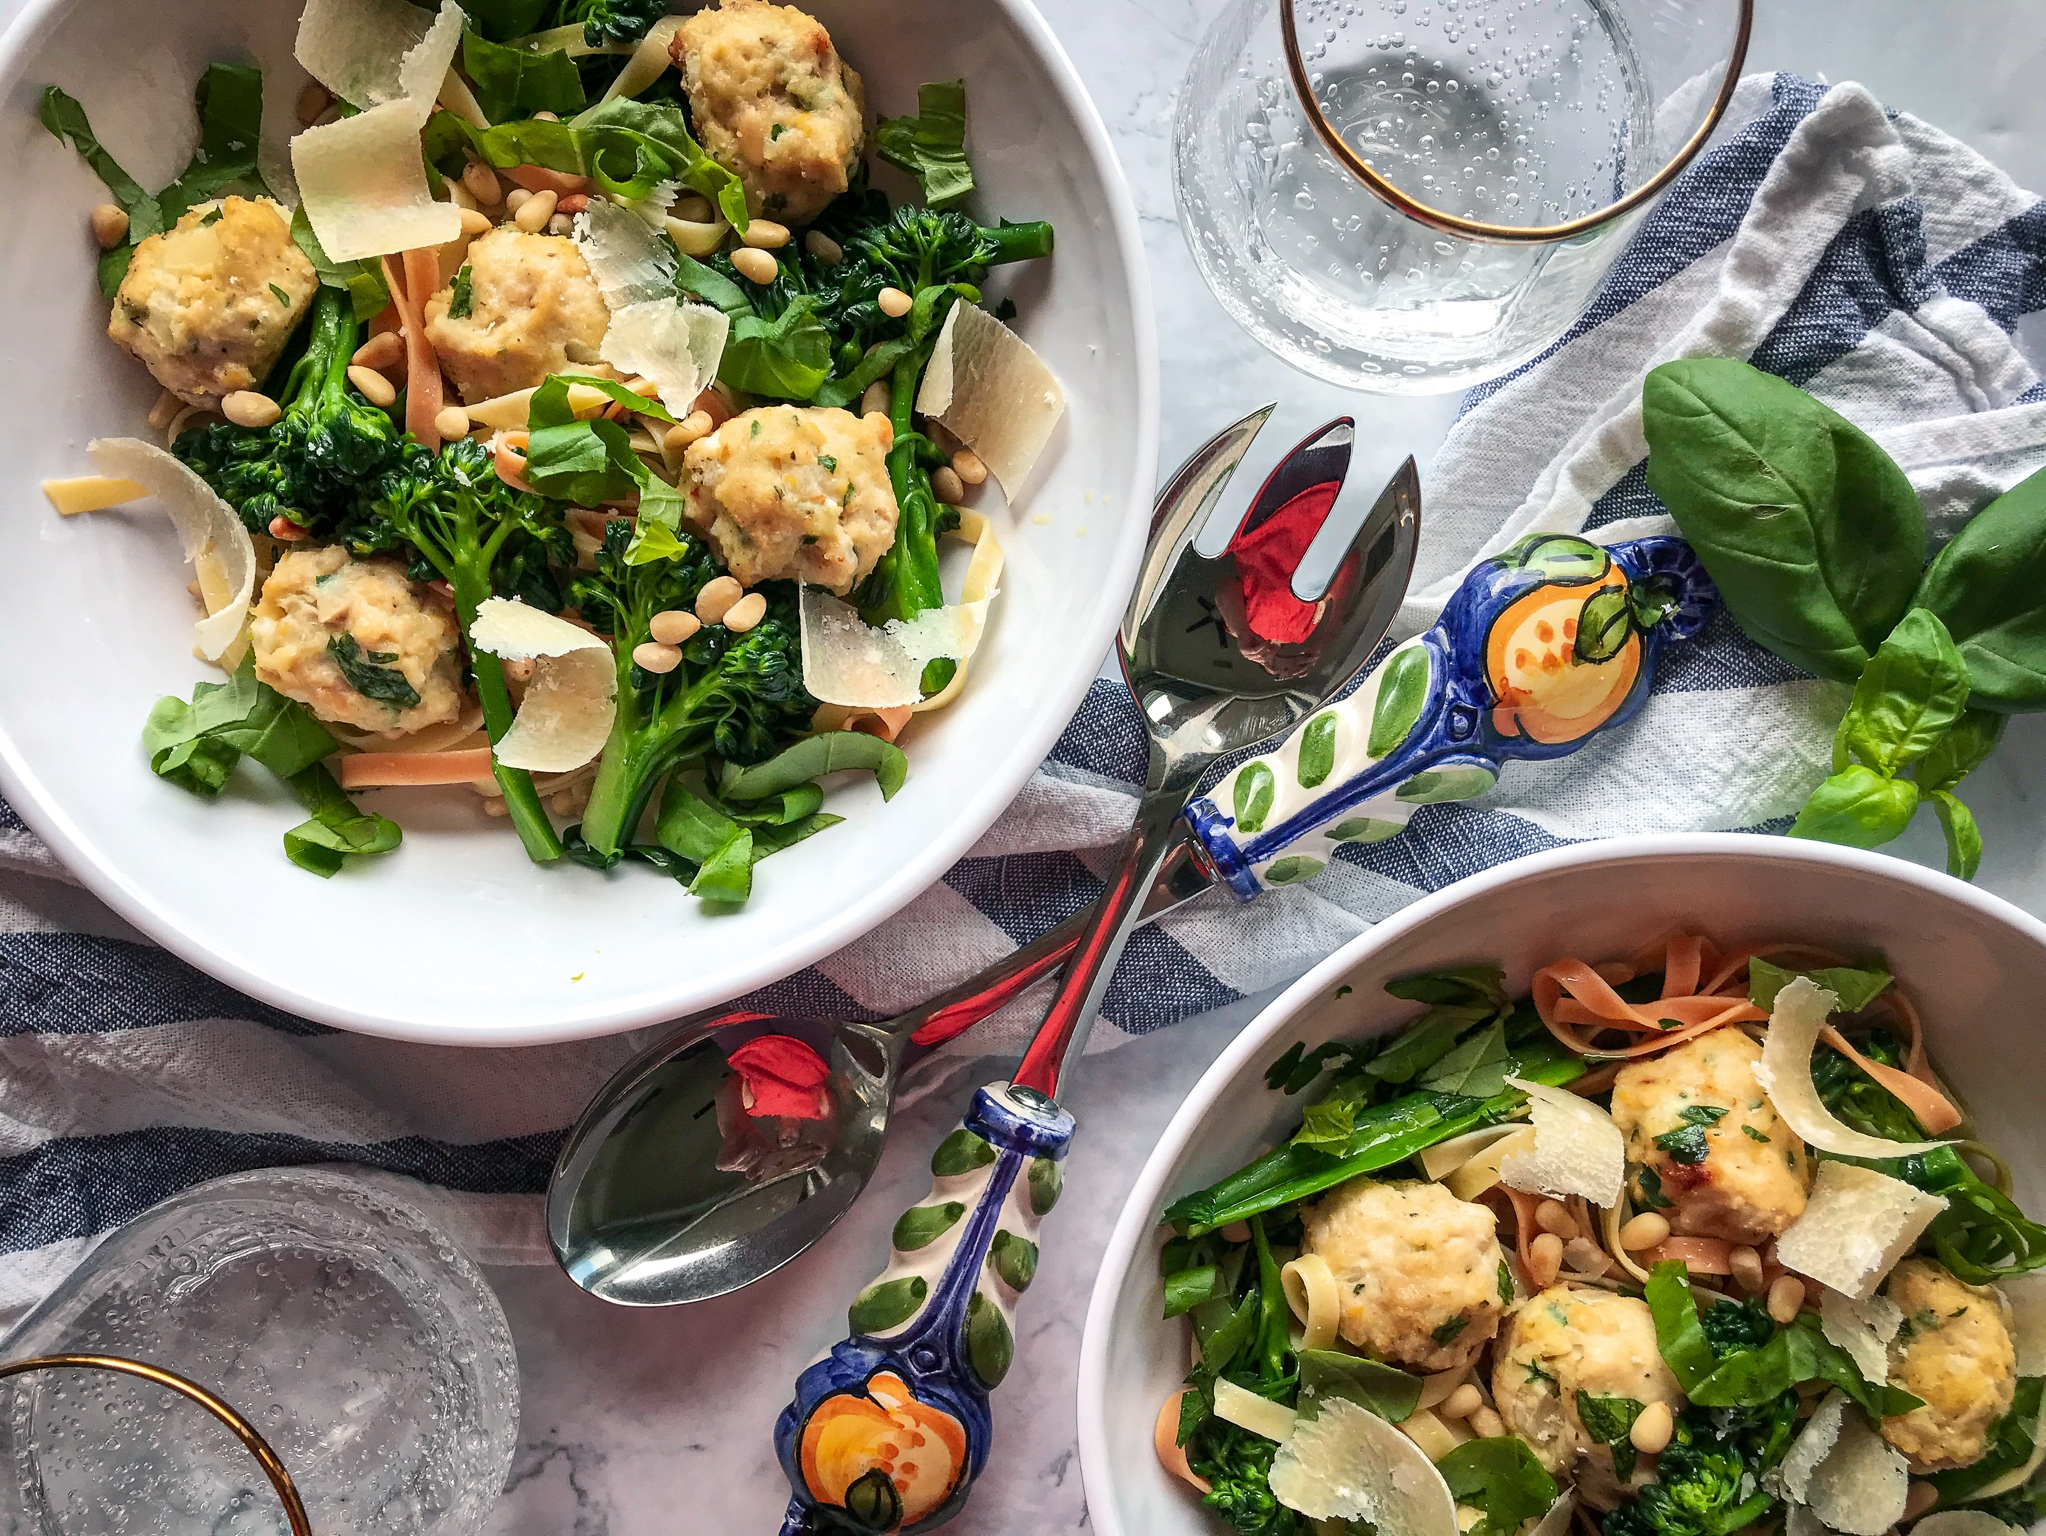 Pasta with Chicken Parmesan Meatballs and Broccolini